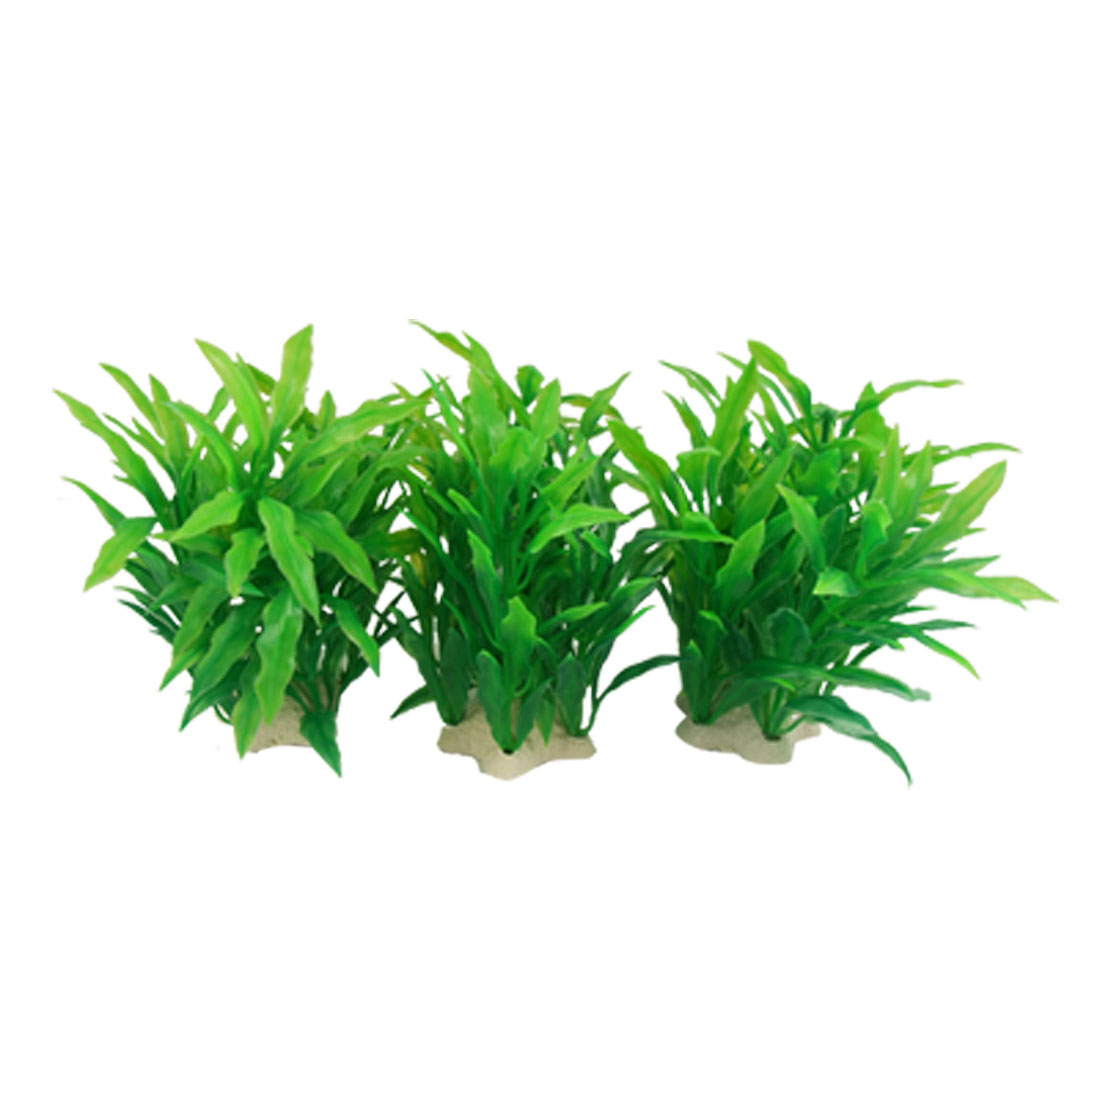 Fish Tank 3 Pcs Plastic Plant Green w Five Point Star Base